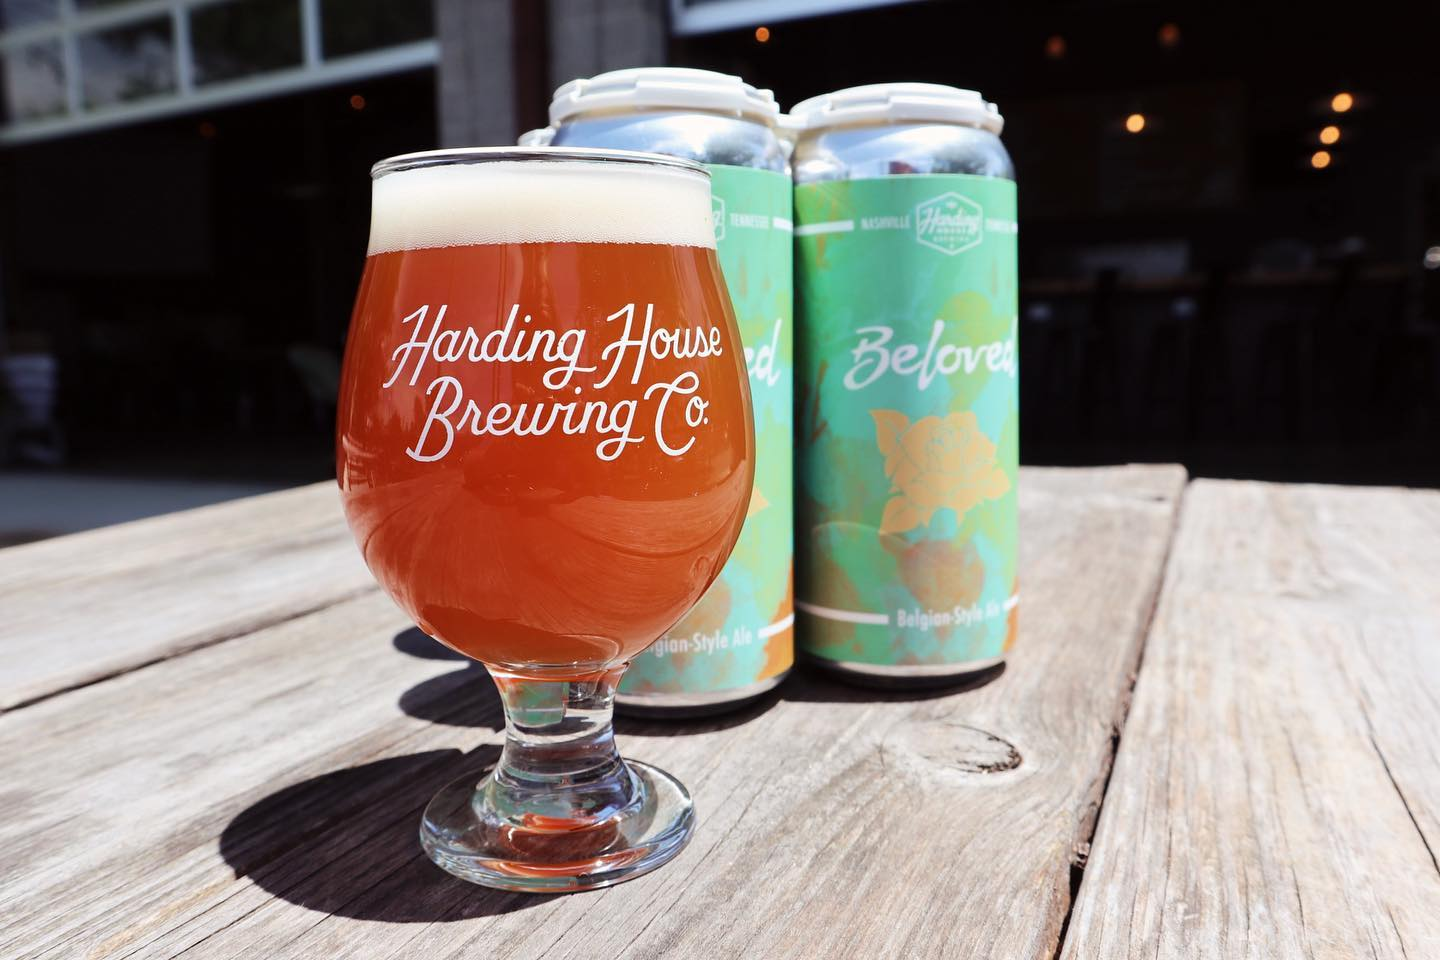 Harding House Brewing Co